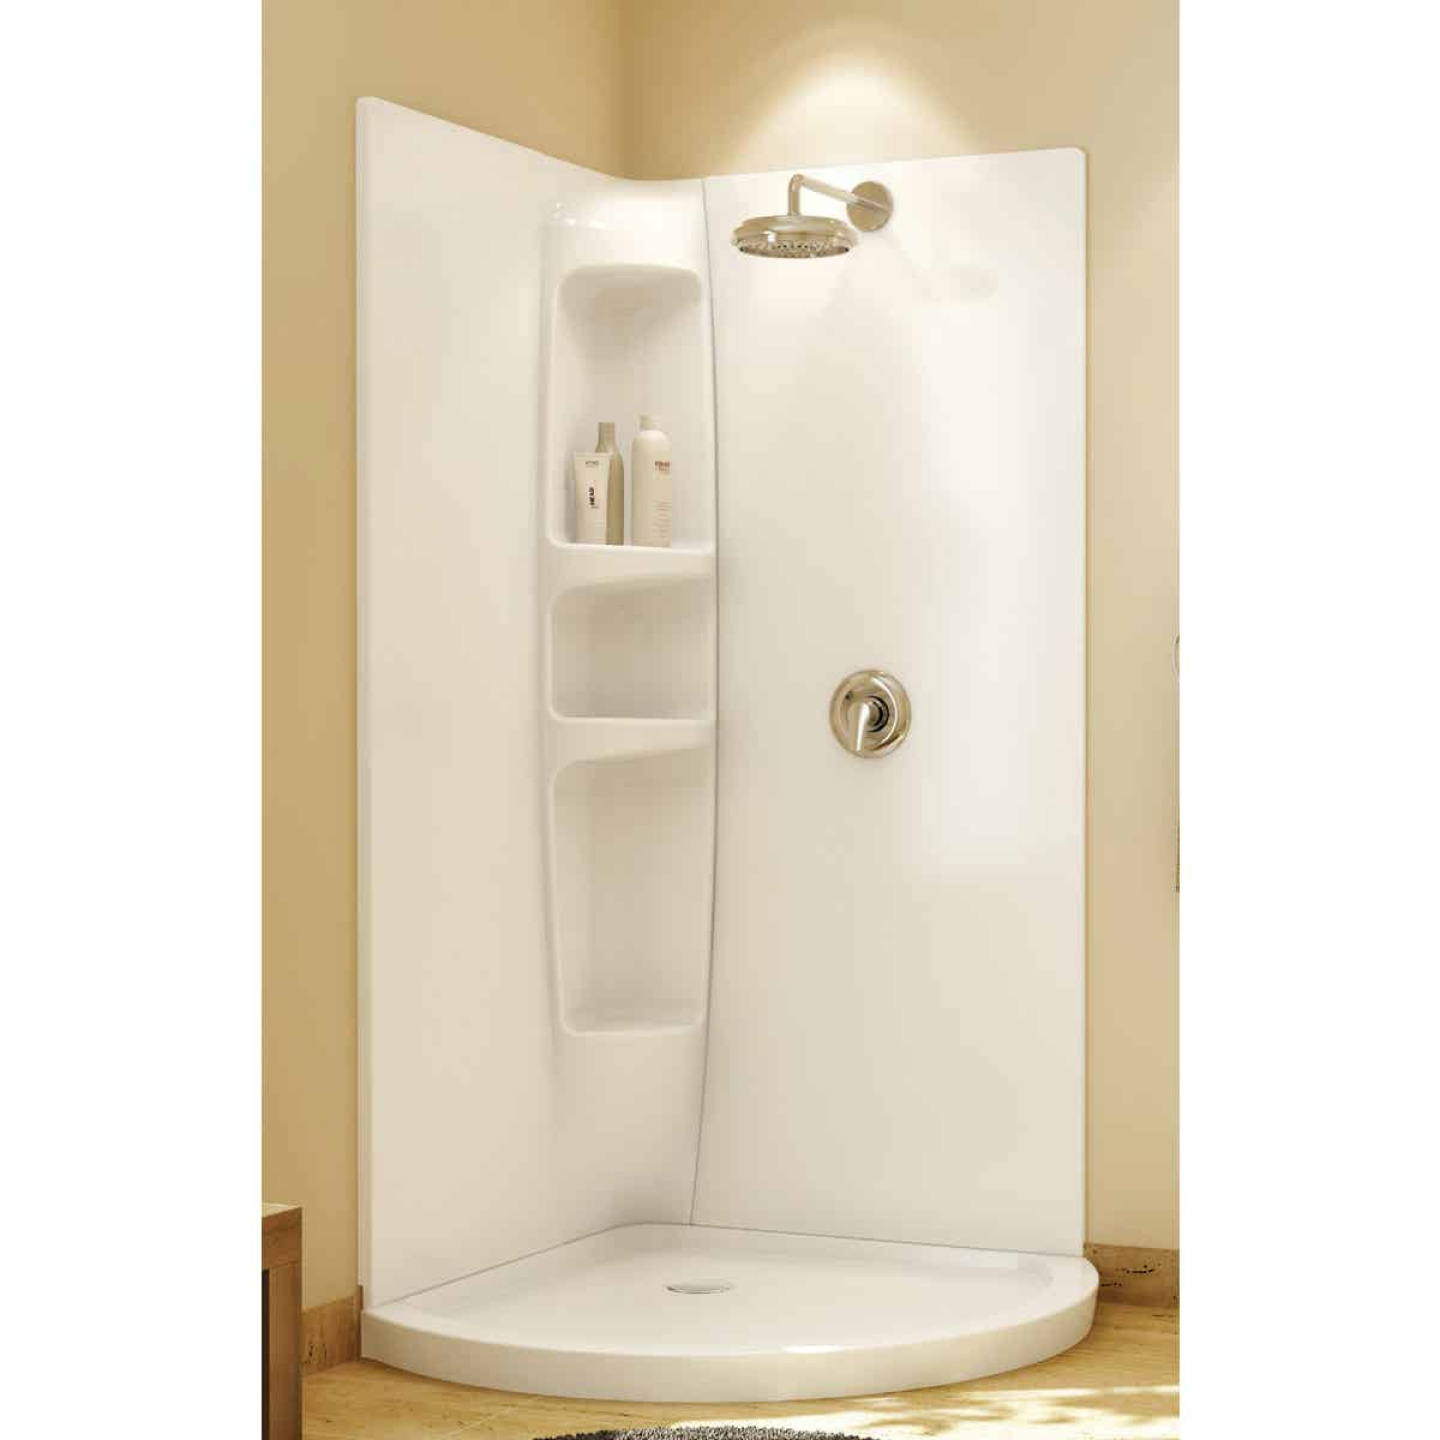 Maax Olympia 2-Piece 36 In. W x 77 In. H x 36 In. D Shower Wall Set in White Image 1